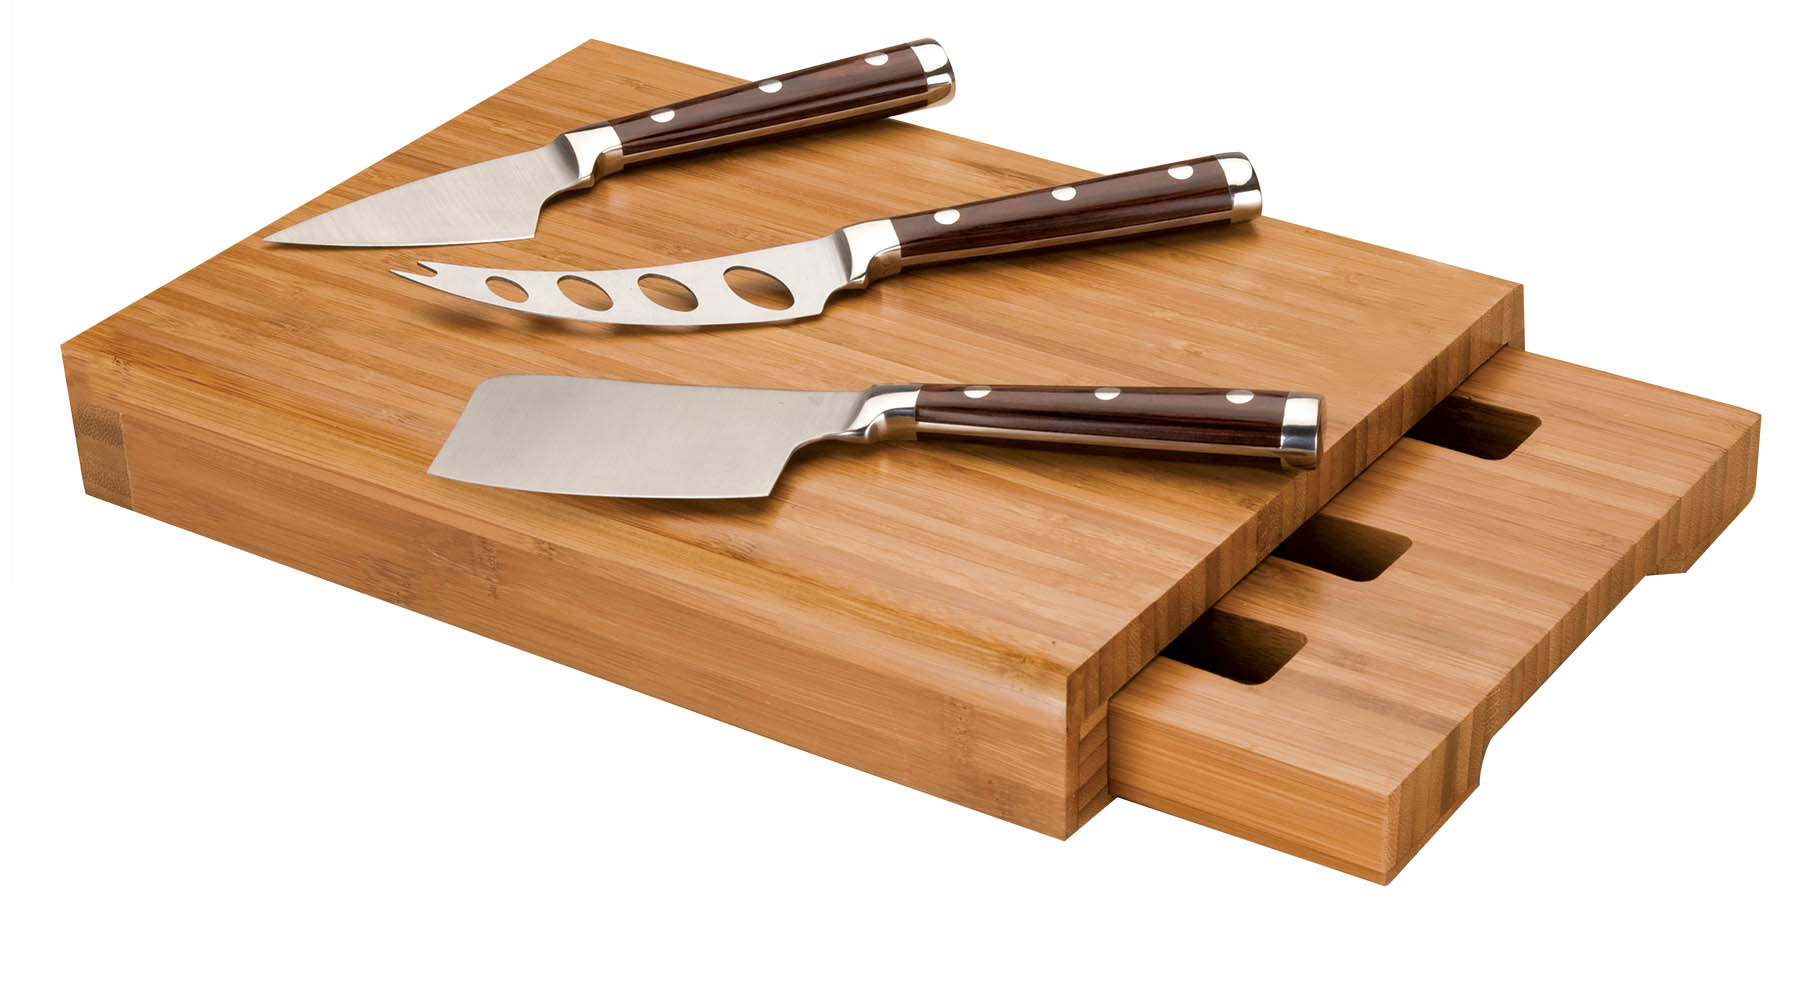 Bamboo Cheese Cutting Board Stainless Steel Cleaver Set